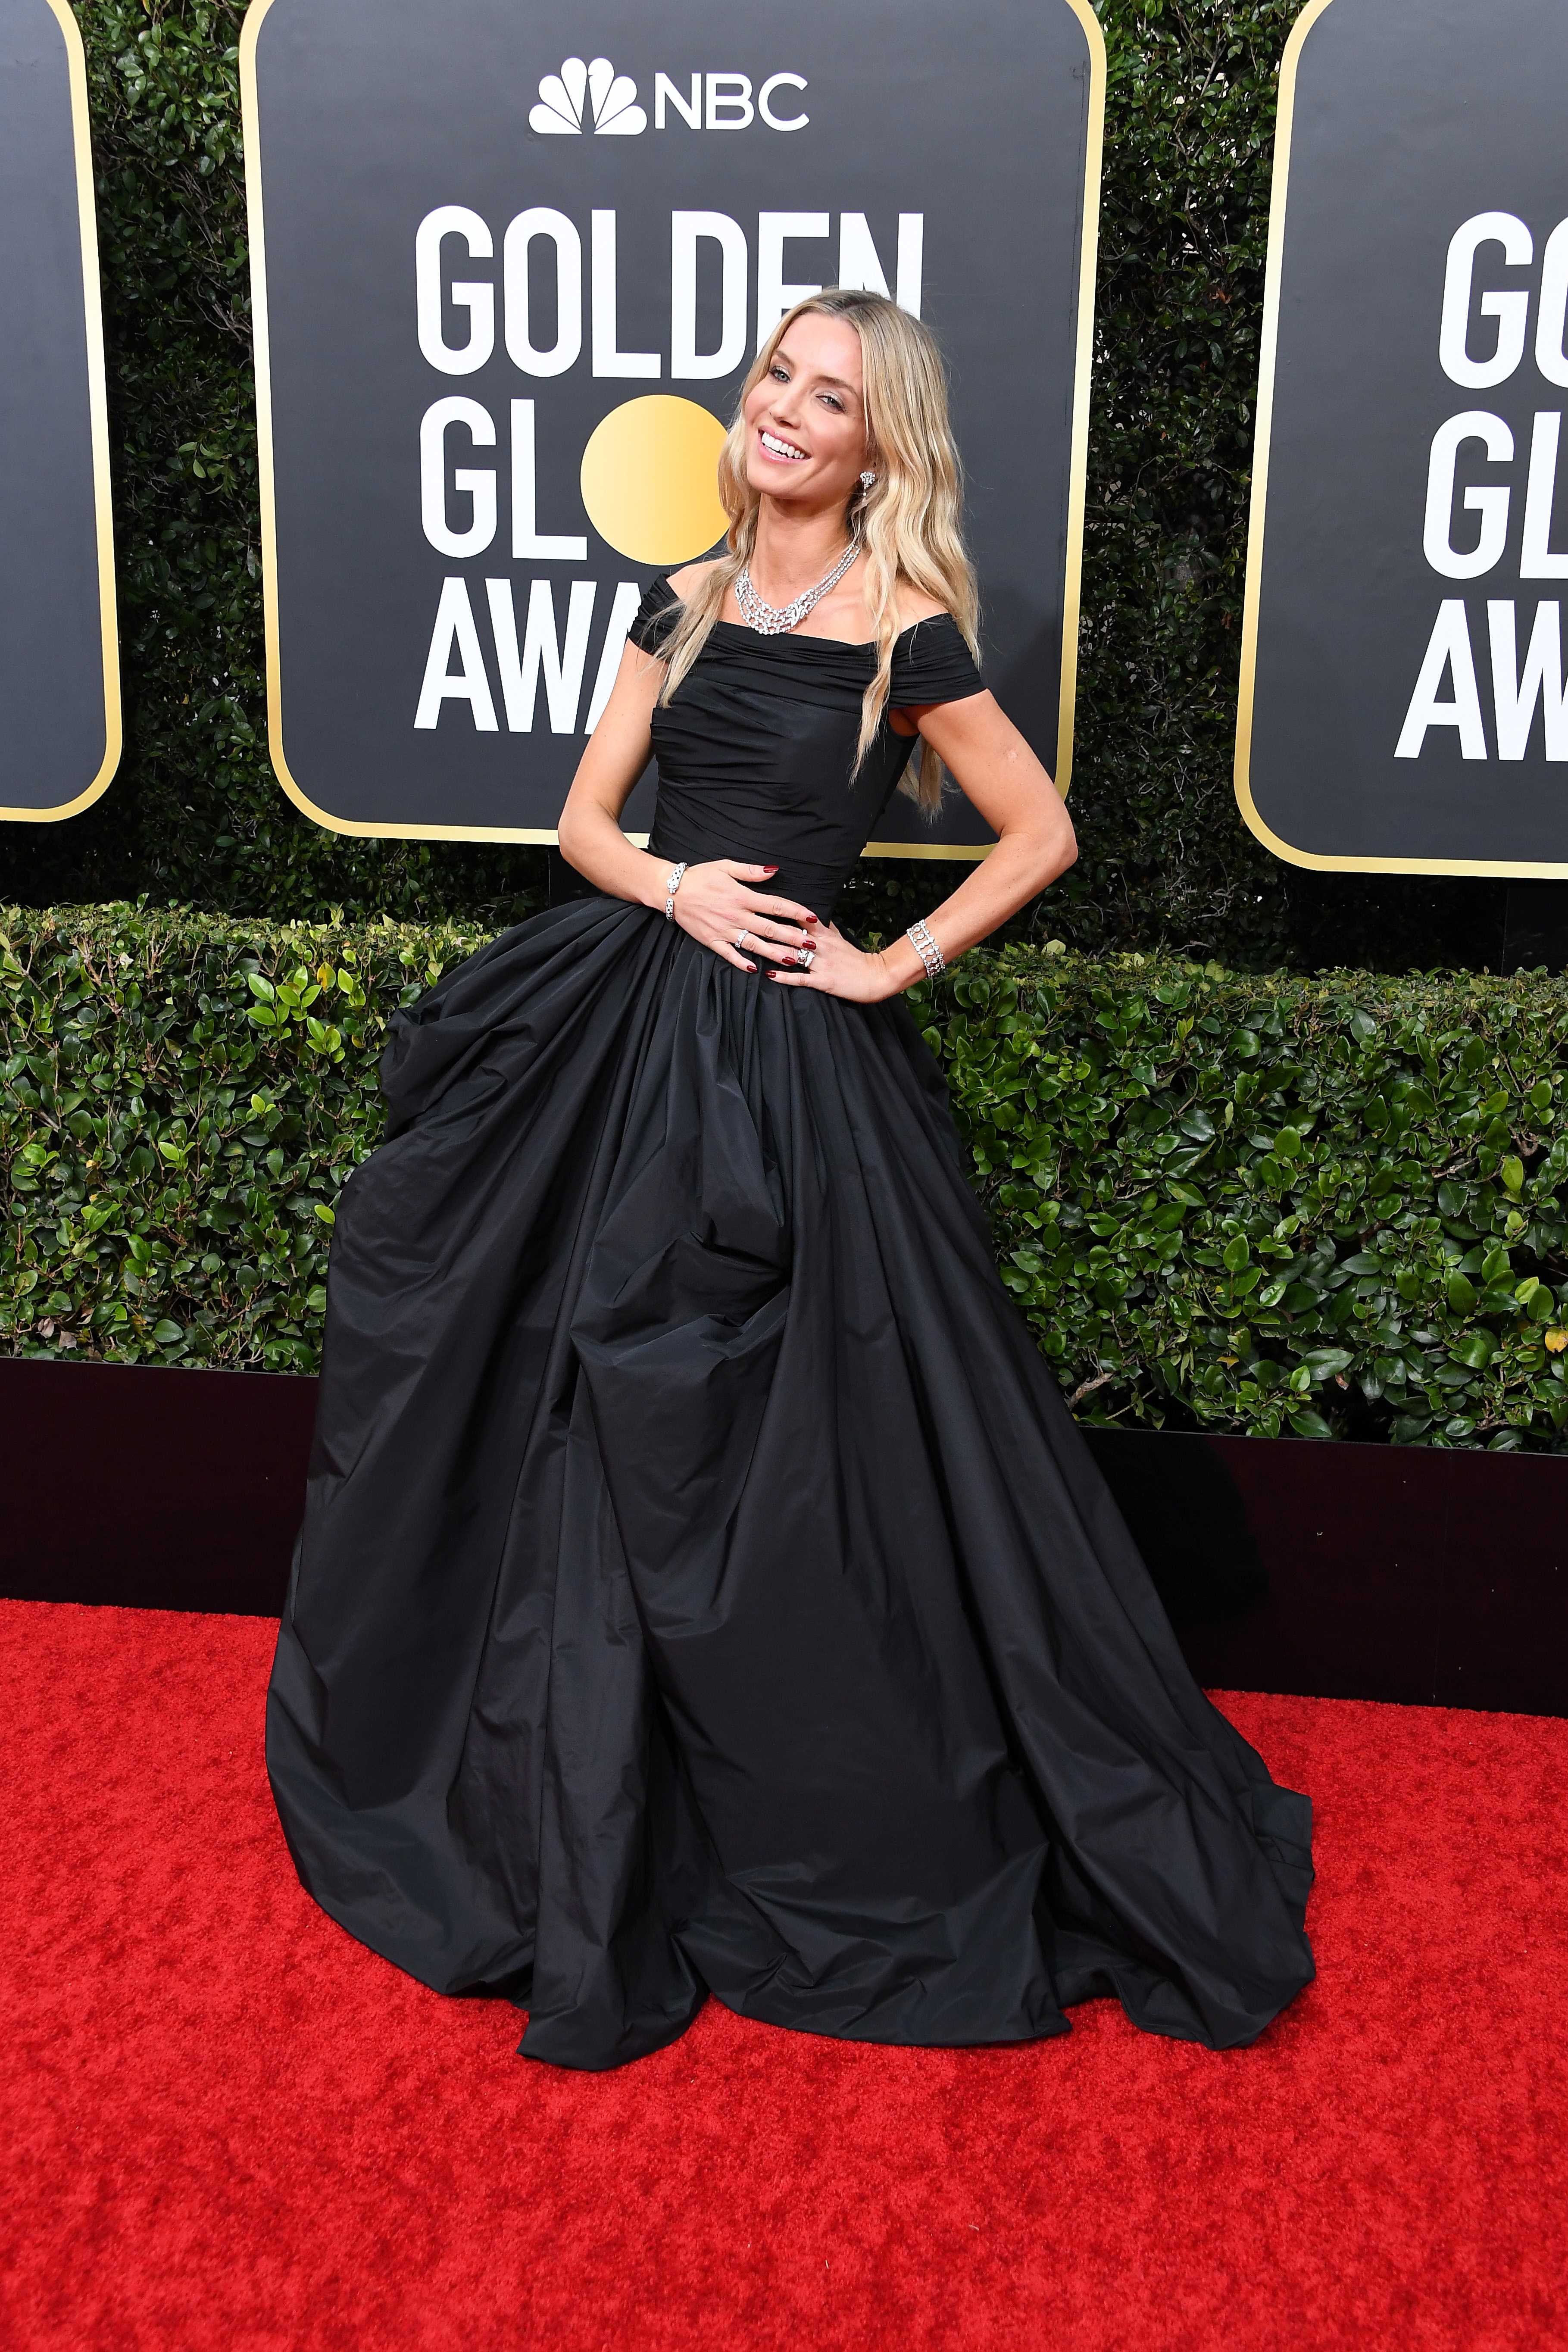 BEVERLY HILLS, CALIFORNIA - JANUARY 05: Annabelle Wallis attends the 77th Annual Golden Globe Awards at The Beverly Hilton Hotel on January 05, 2020 in Beverly Hills, California. (Photo by Steve Granitz/WireImage)